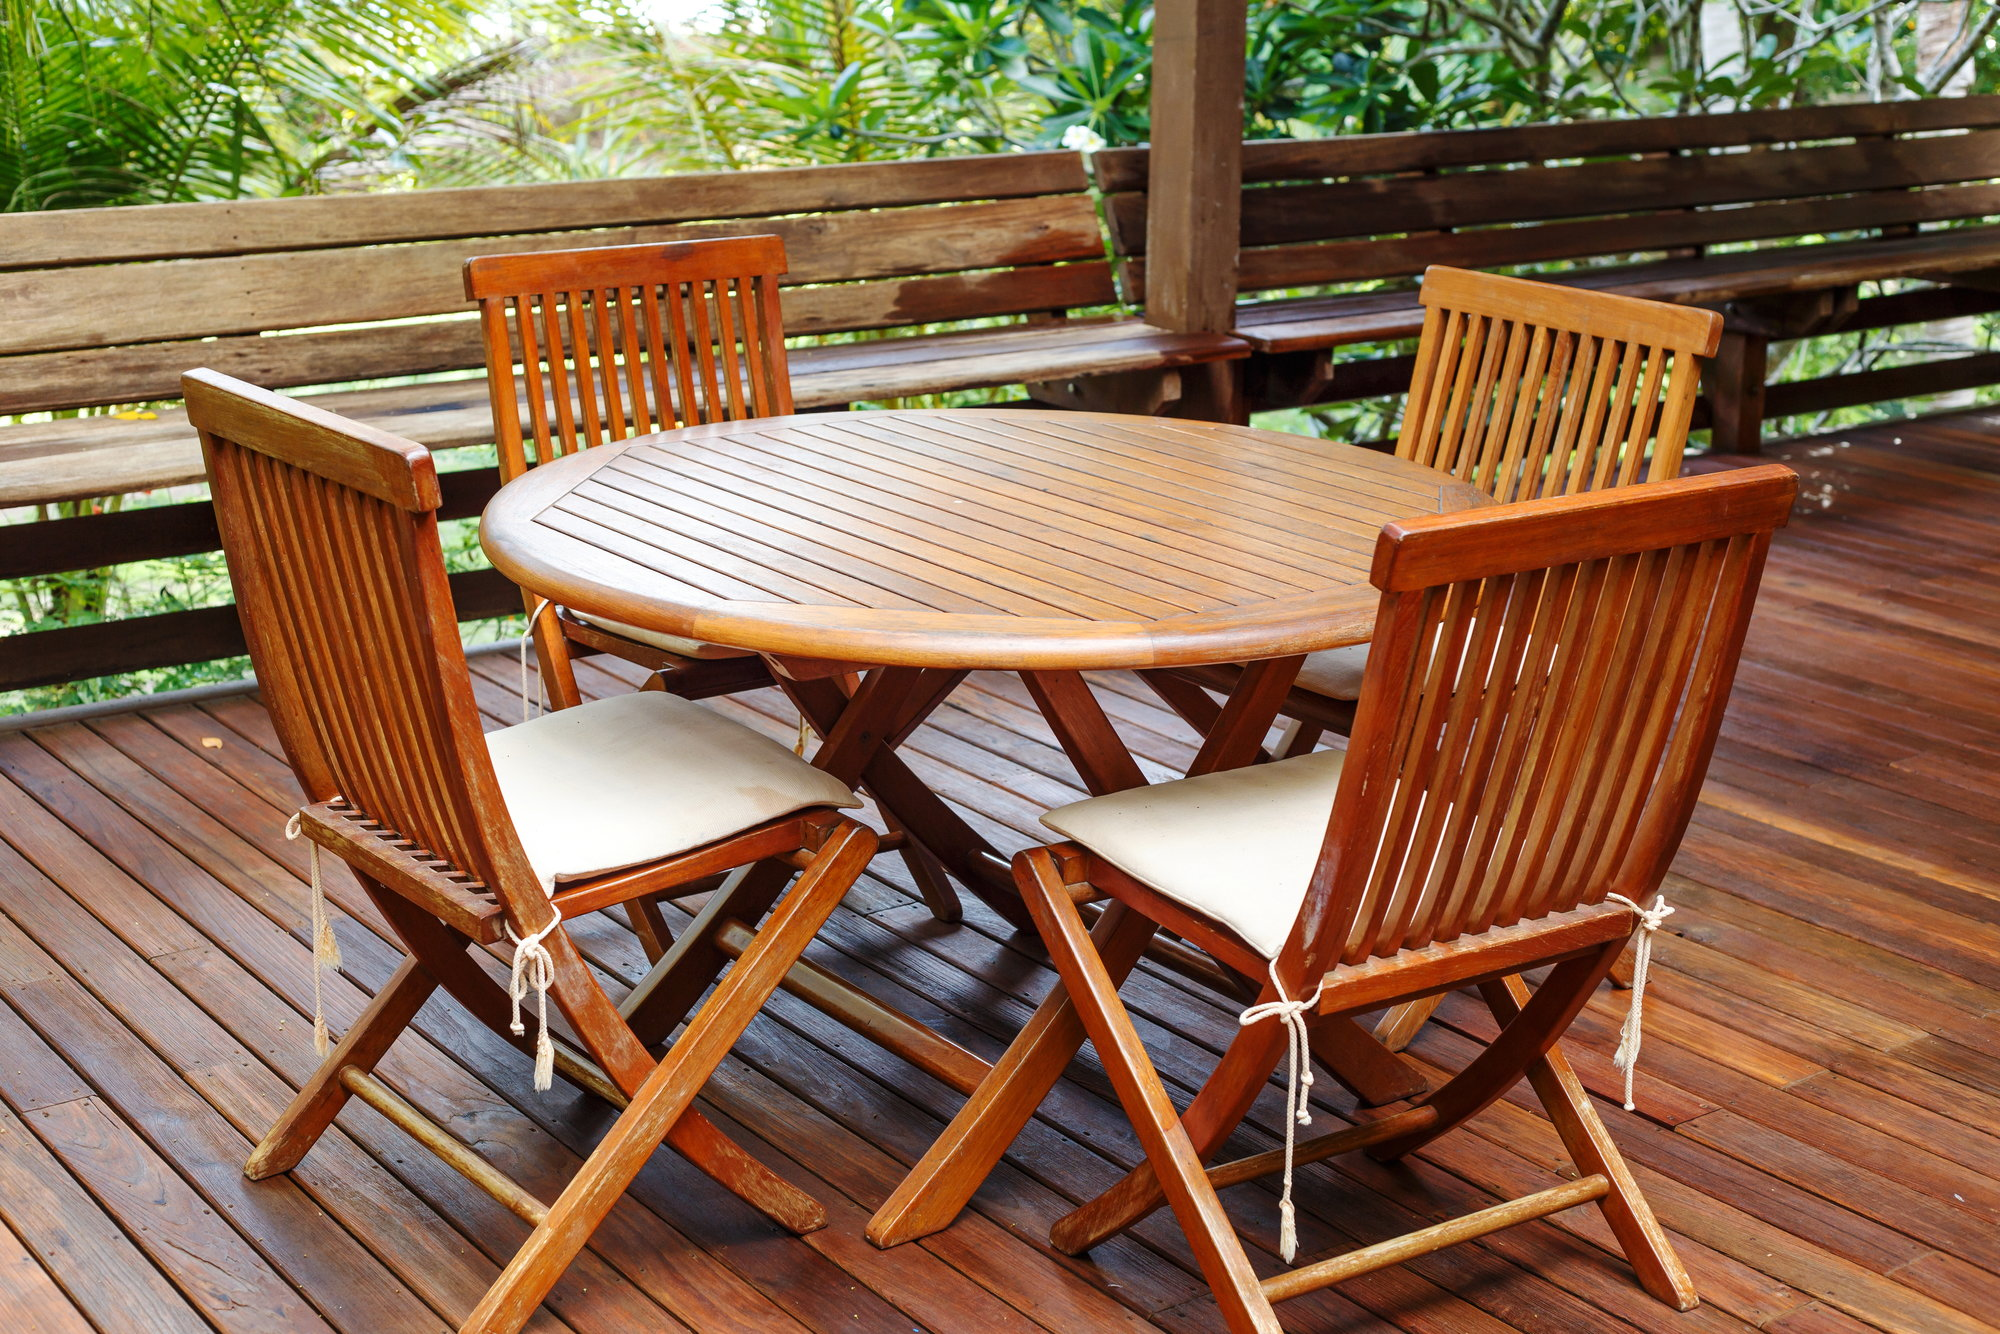 How To Re Outdoor Teak Furniture Doityourself